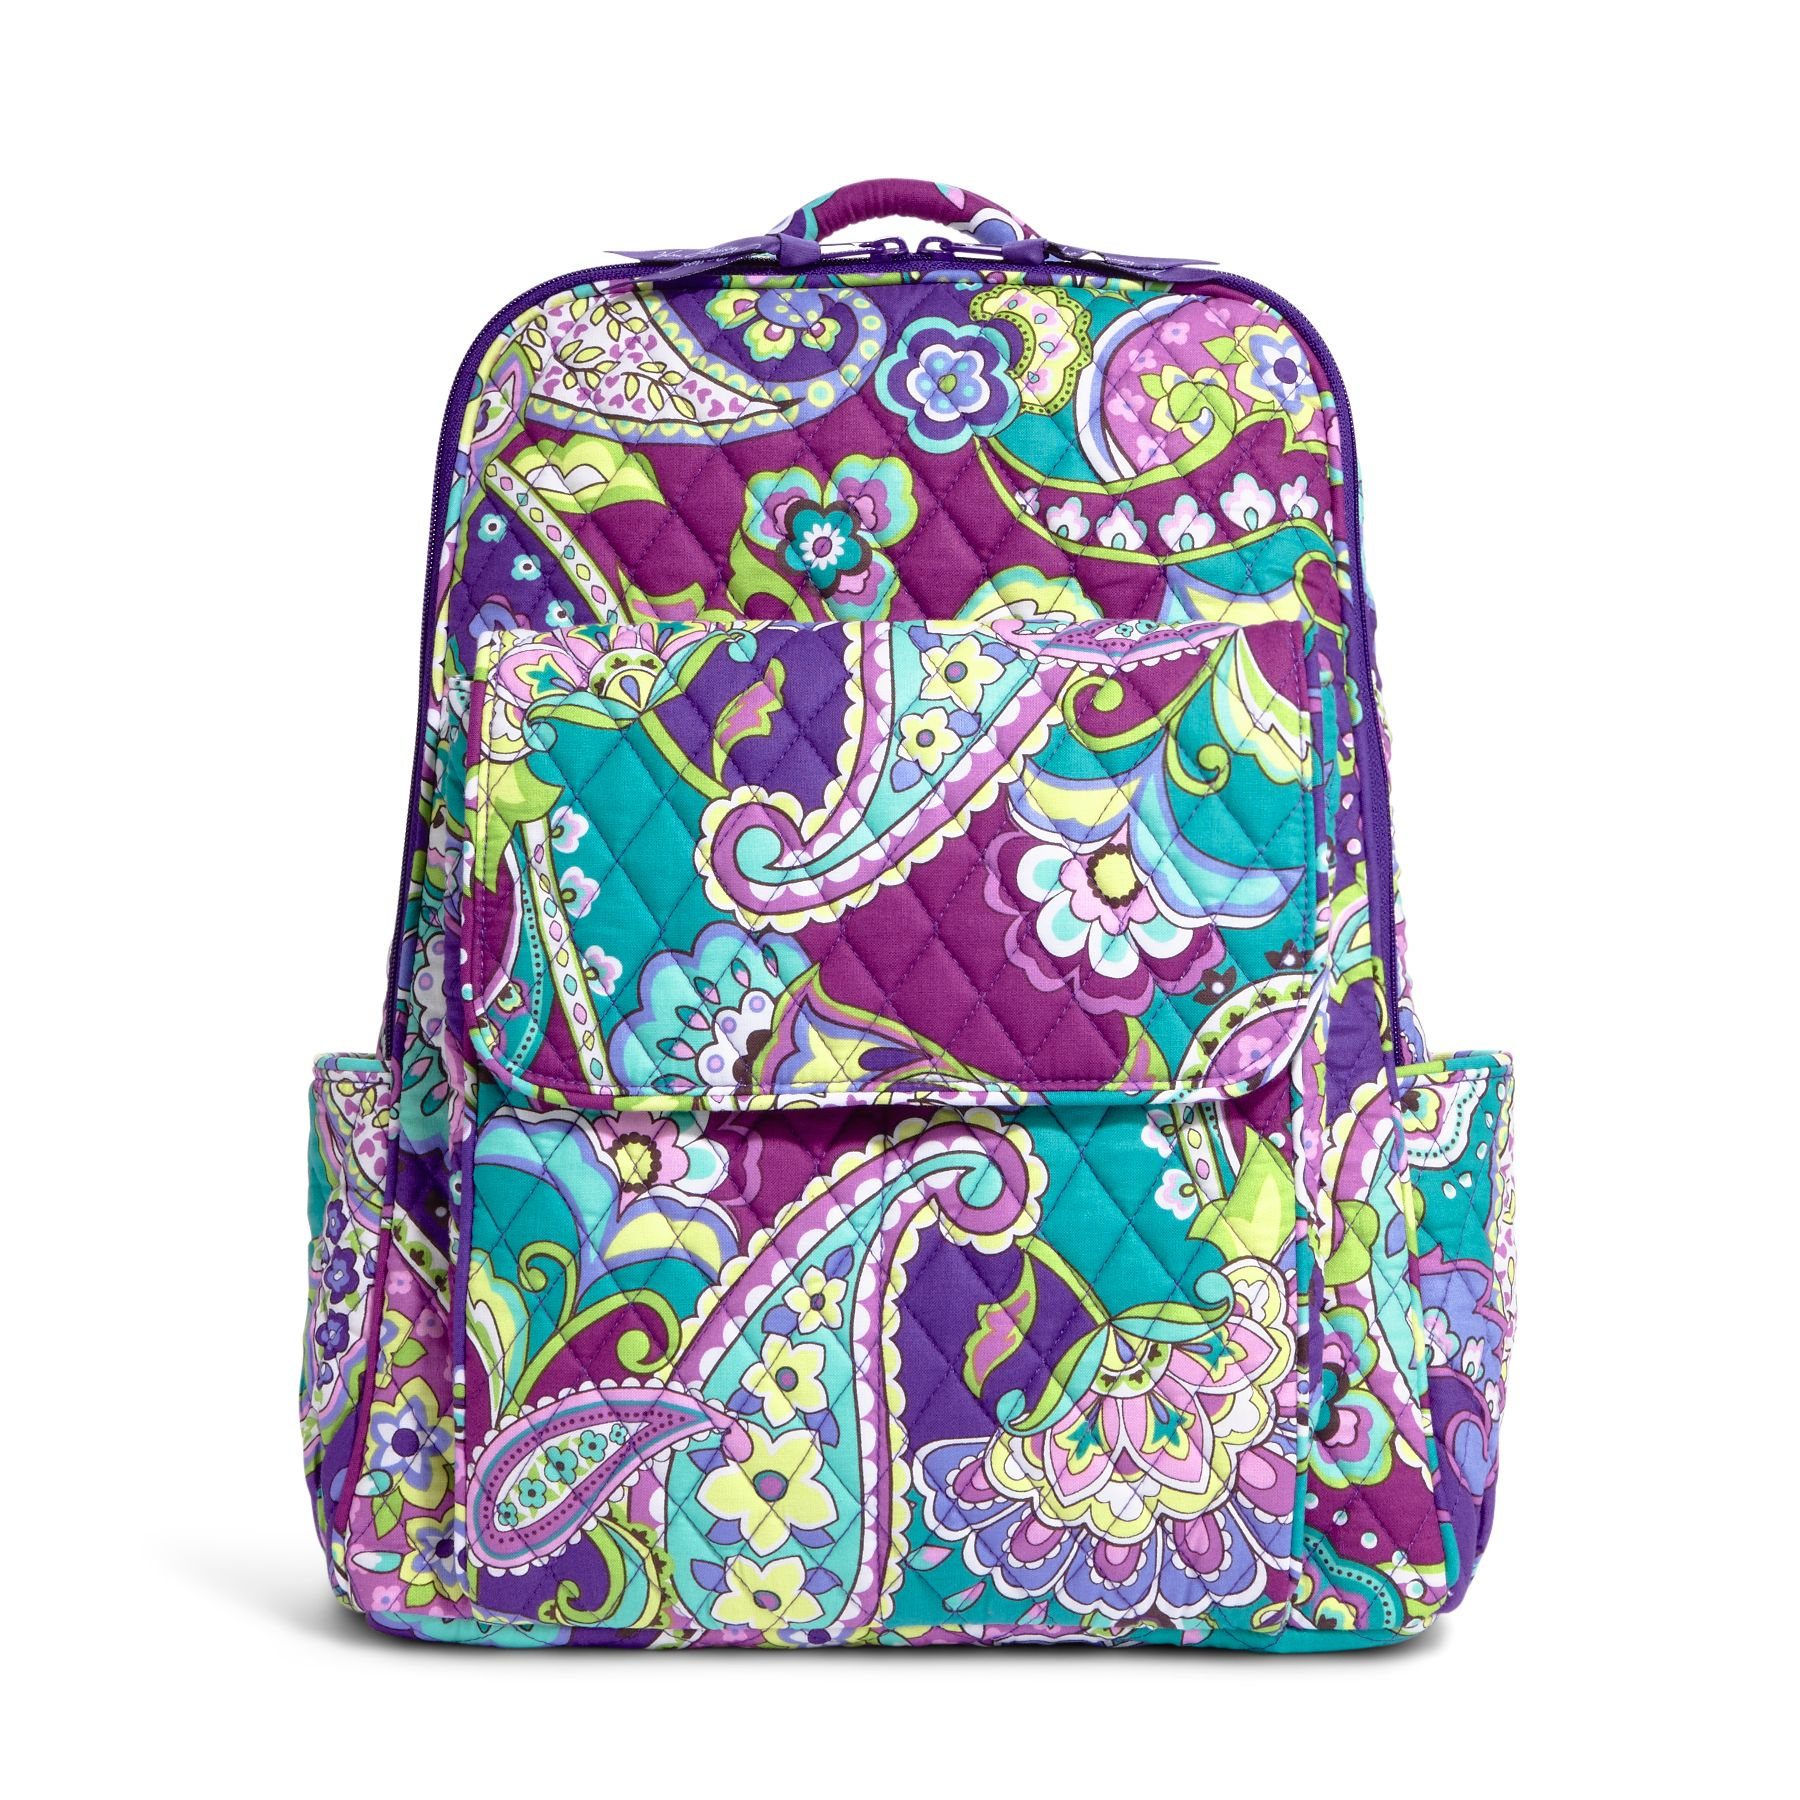 Vera Bradley Ultimate Backpack in Heather